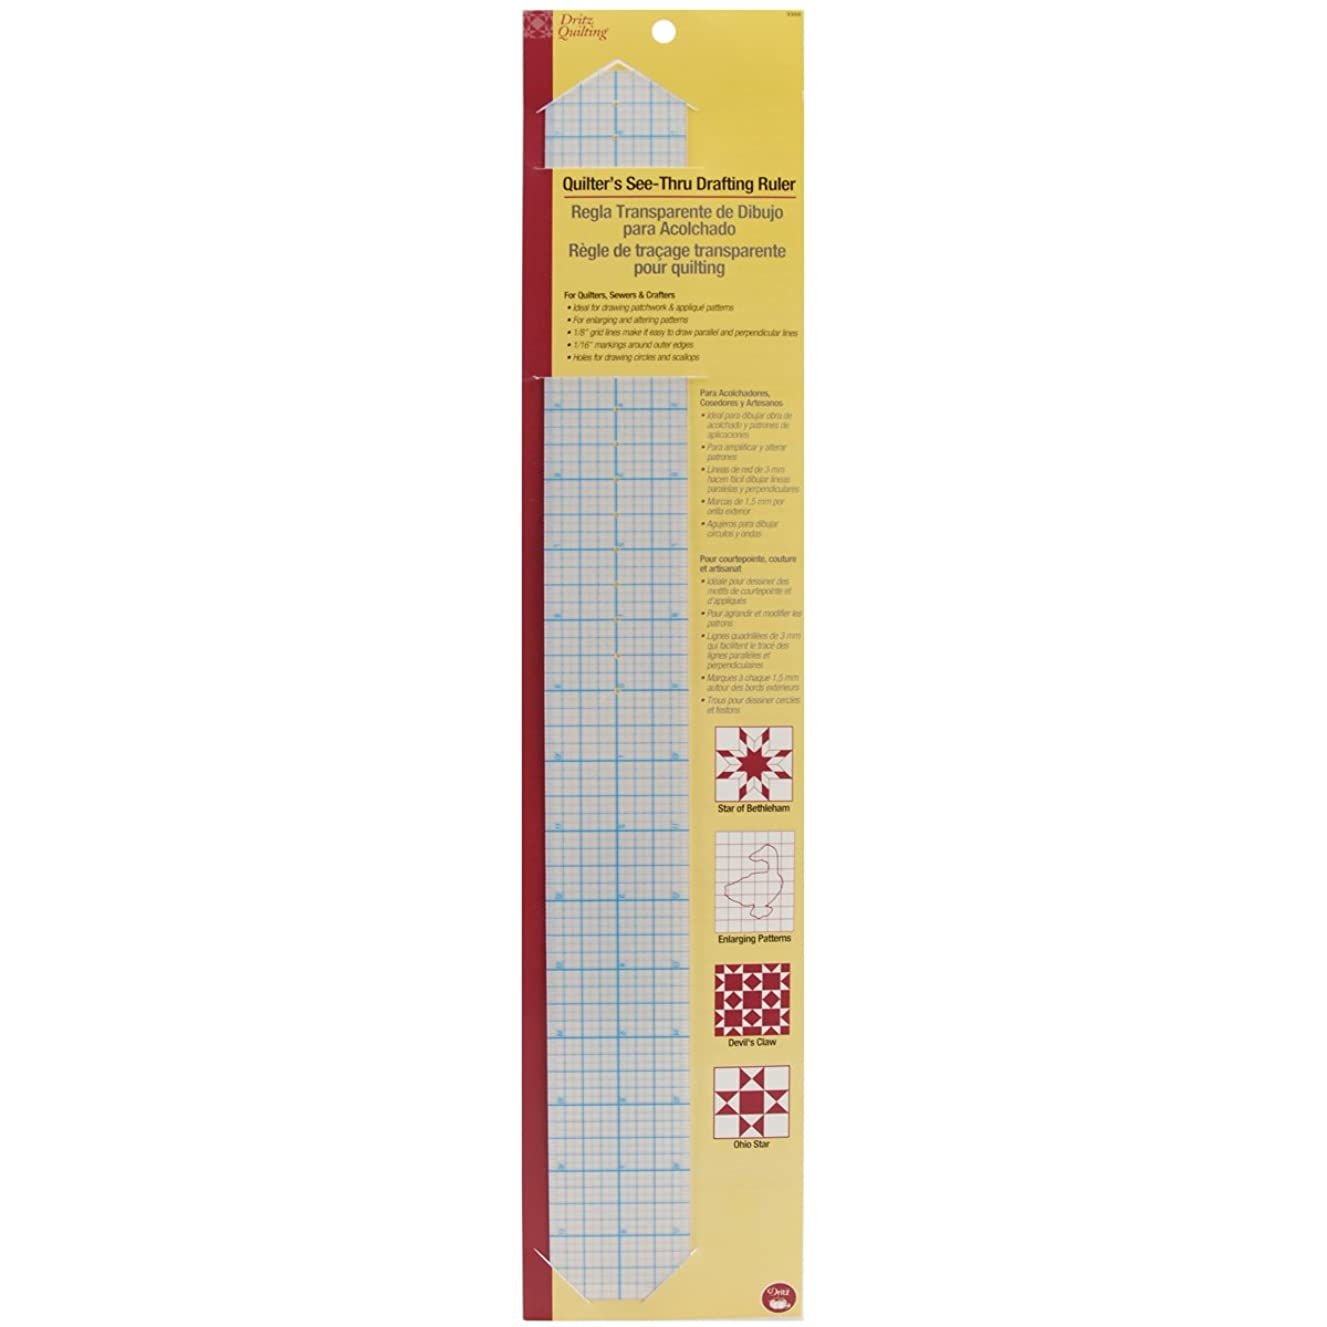 Dritz 3300 Quilter's See-Thru Drafting Ruler, 2 x 18-Inch